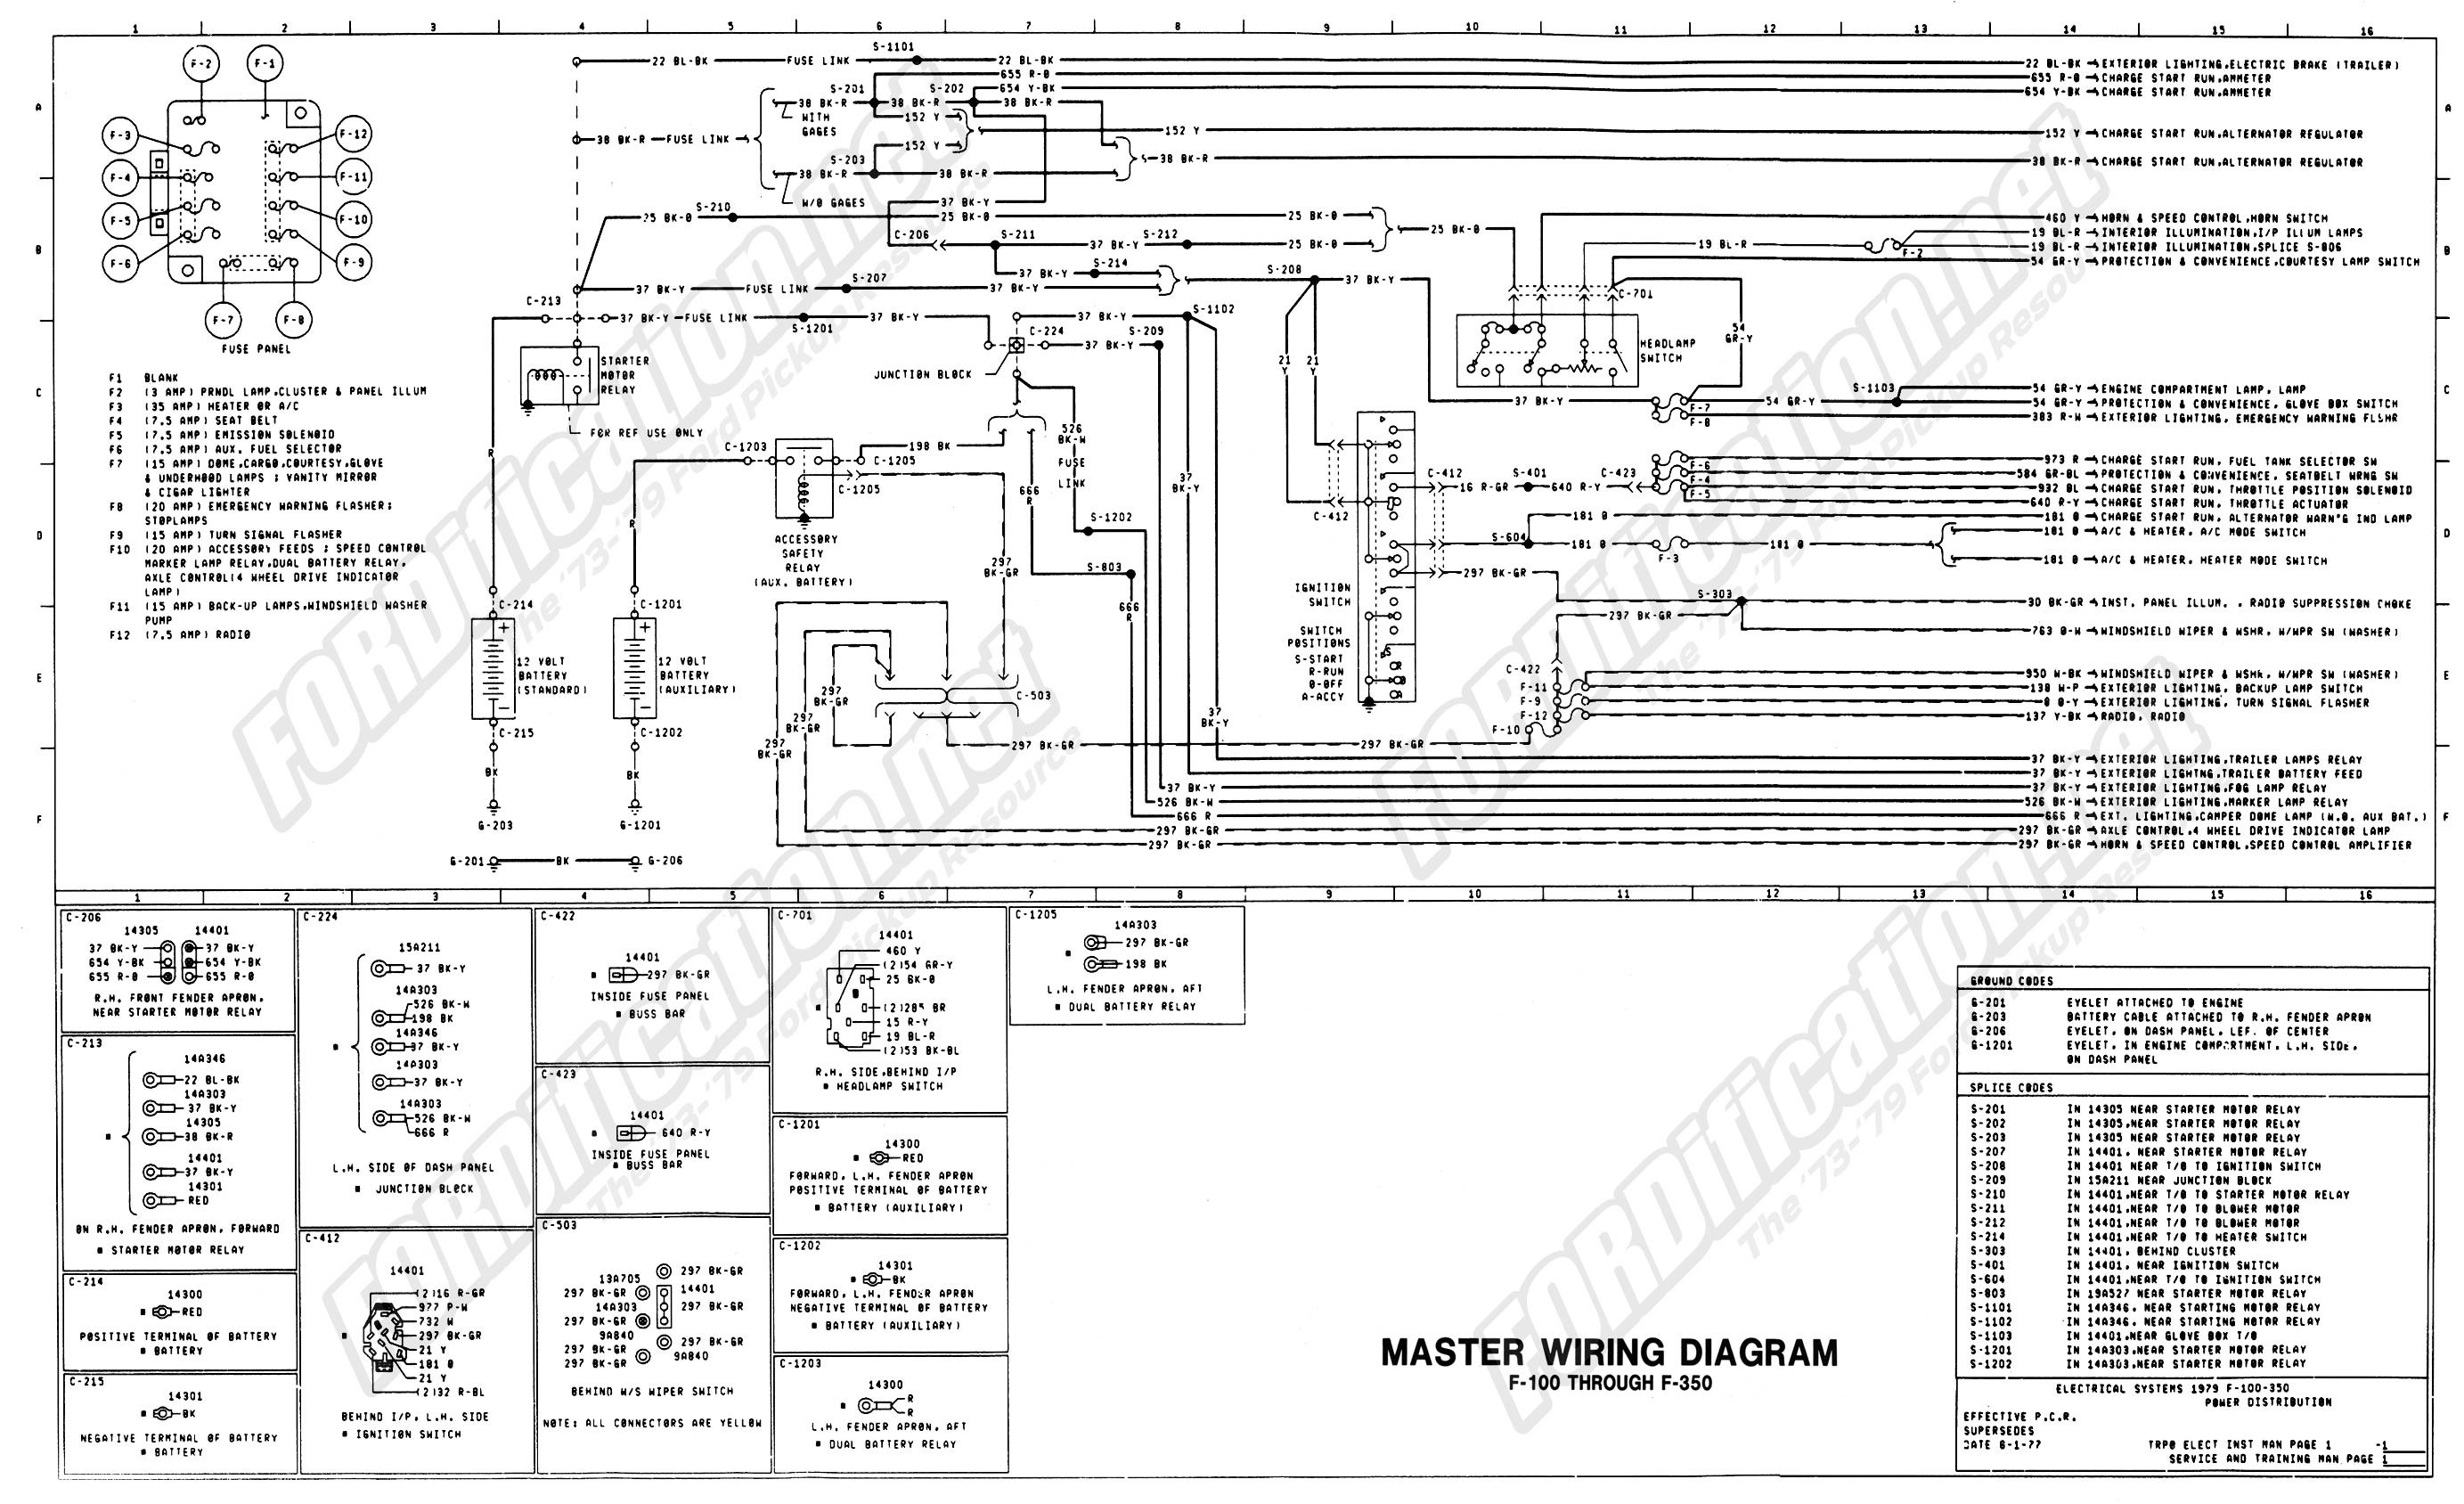 1998 ford F150 Pickup Truck Car Radio Wiring Diagram F150 Wiring Harness Further 1970 ford torino Ignition Wiring Diagram Of 1998 ford F150 Pickup Truck Car Radio Wiring Diagram